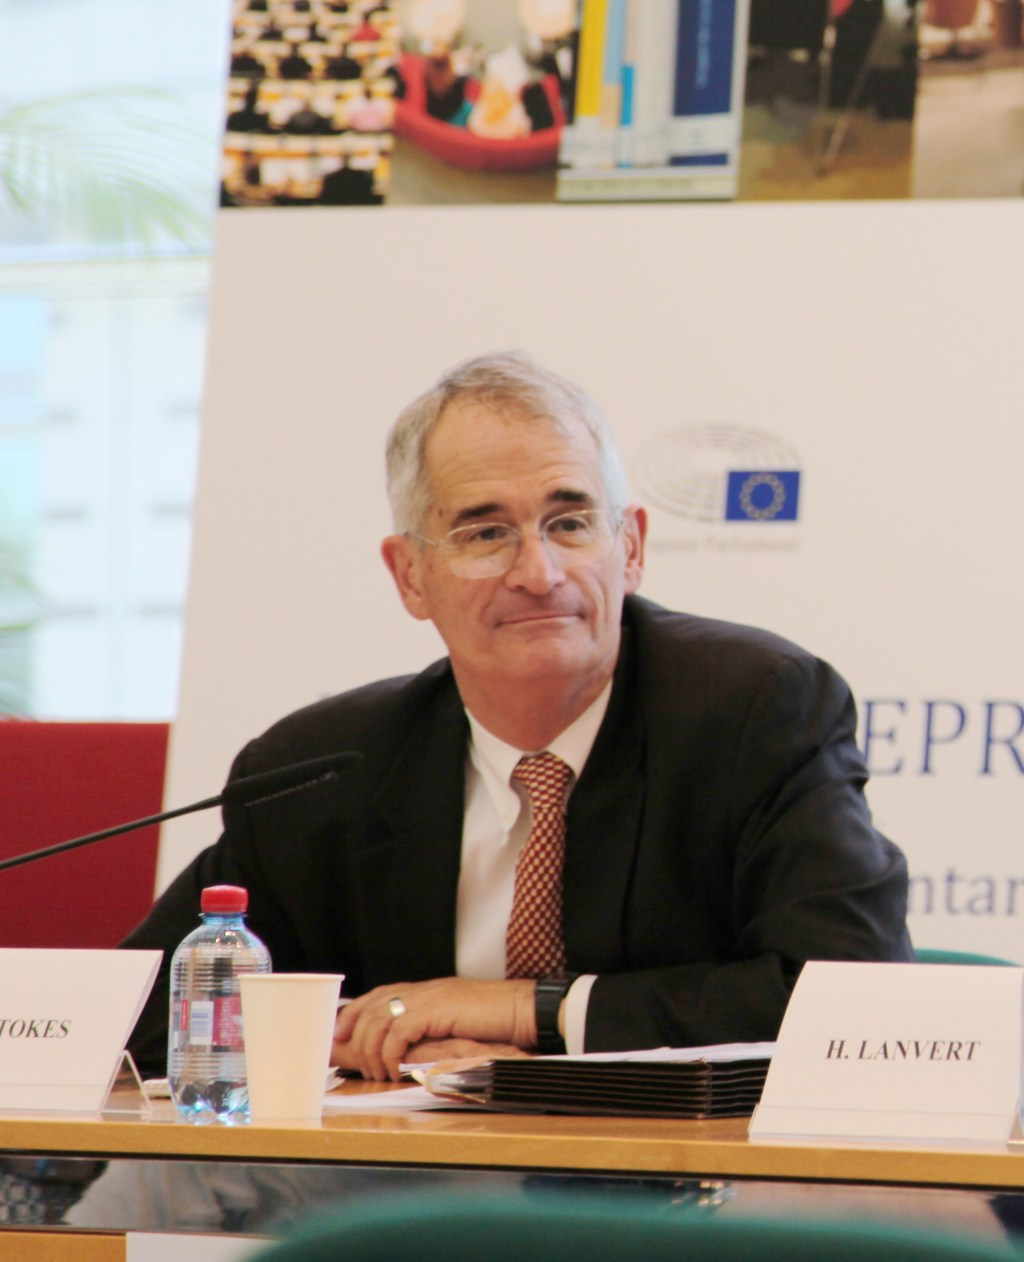 Public opinion in Europe: EPRS roundtable discussion